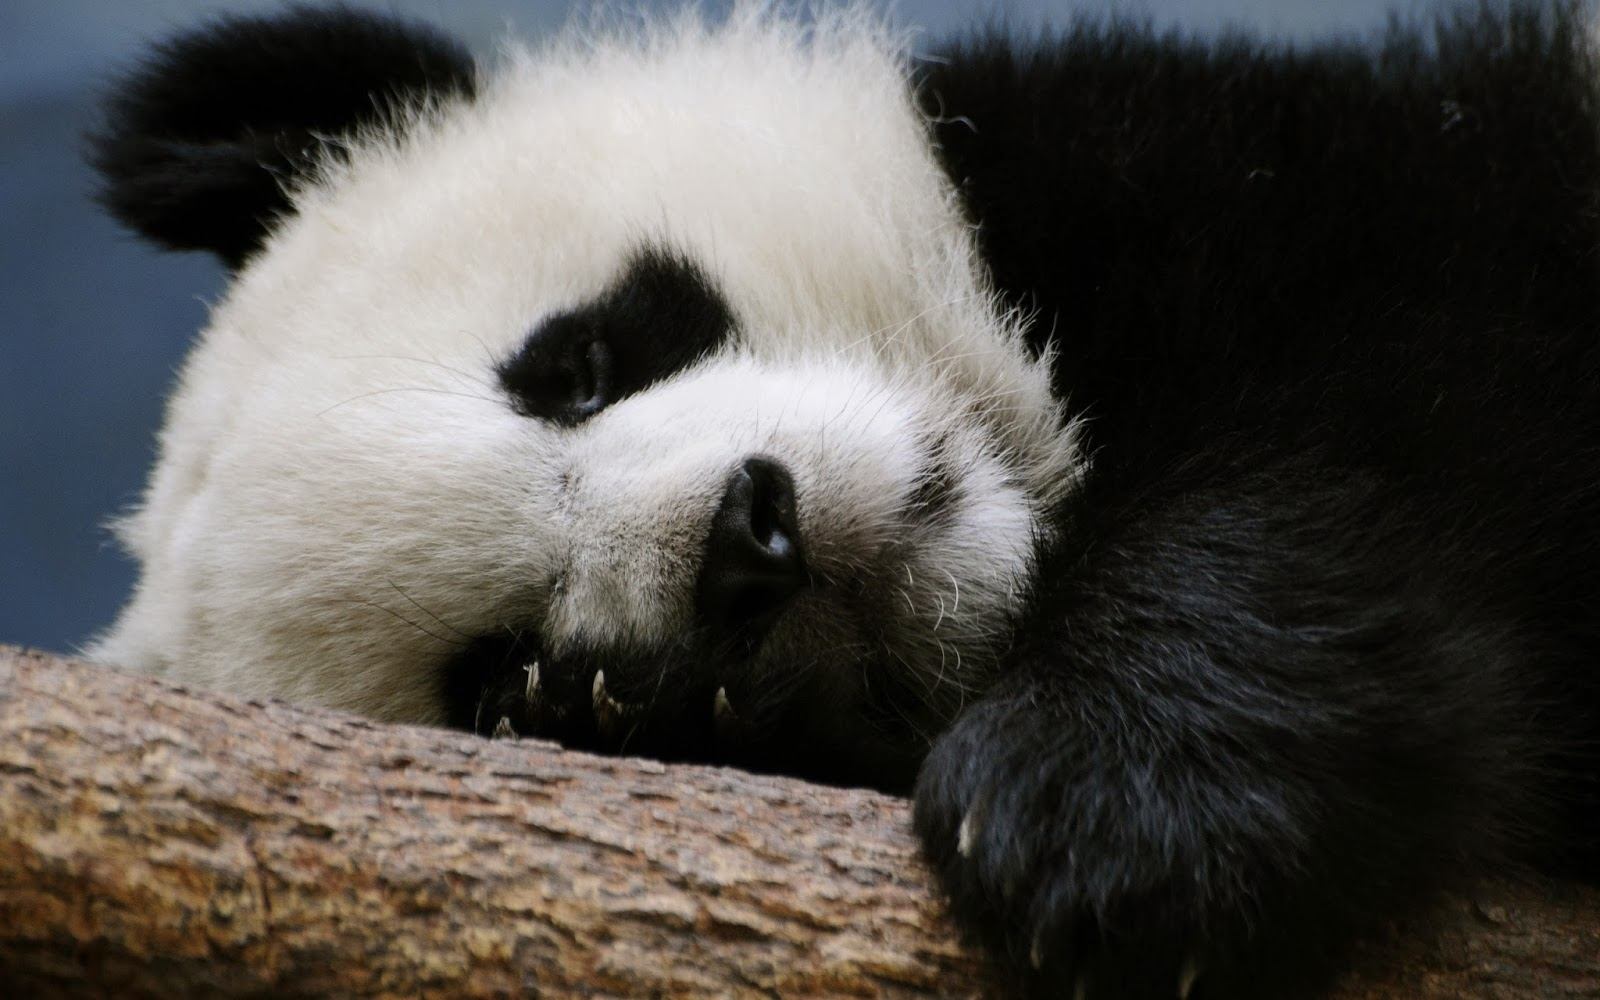 Cute Panda Wallpapers Baby Free Kung Fu Tare Giant